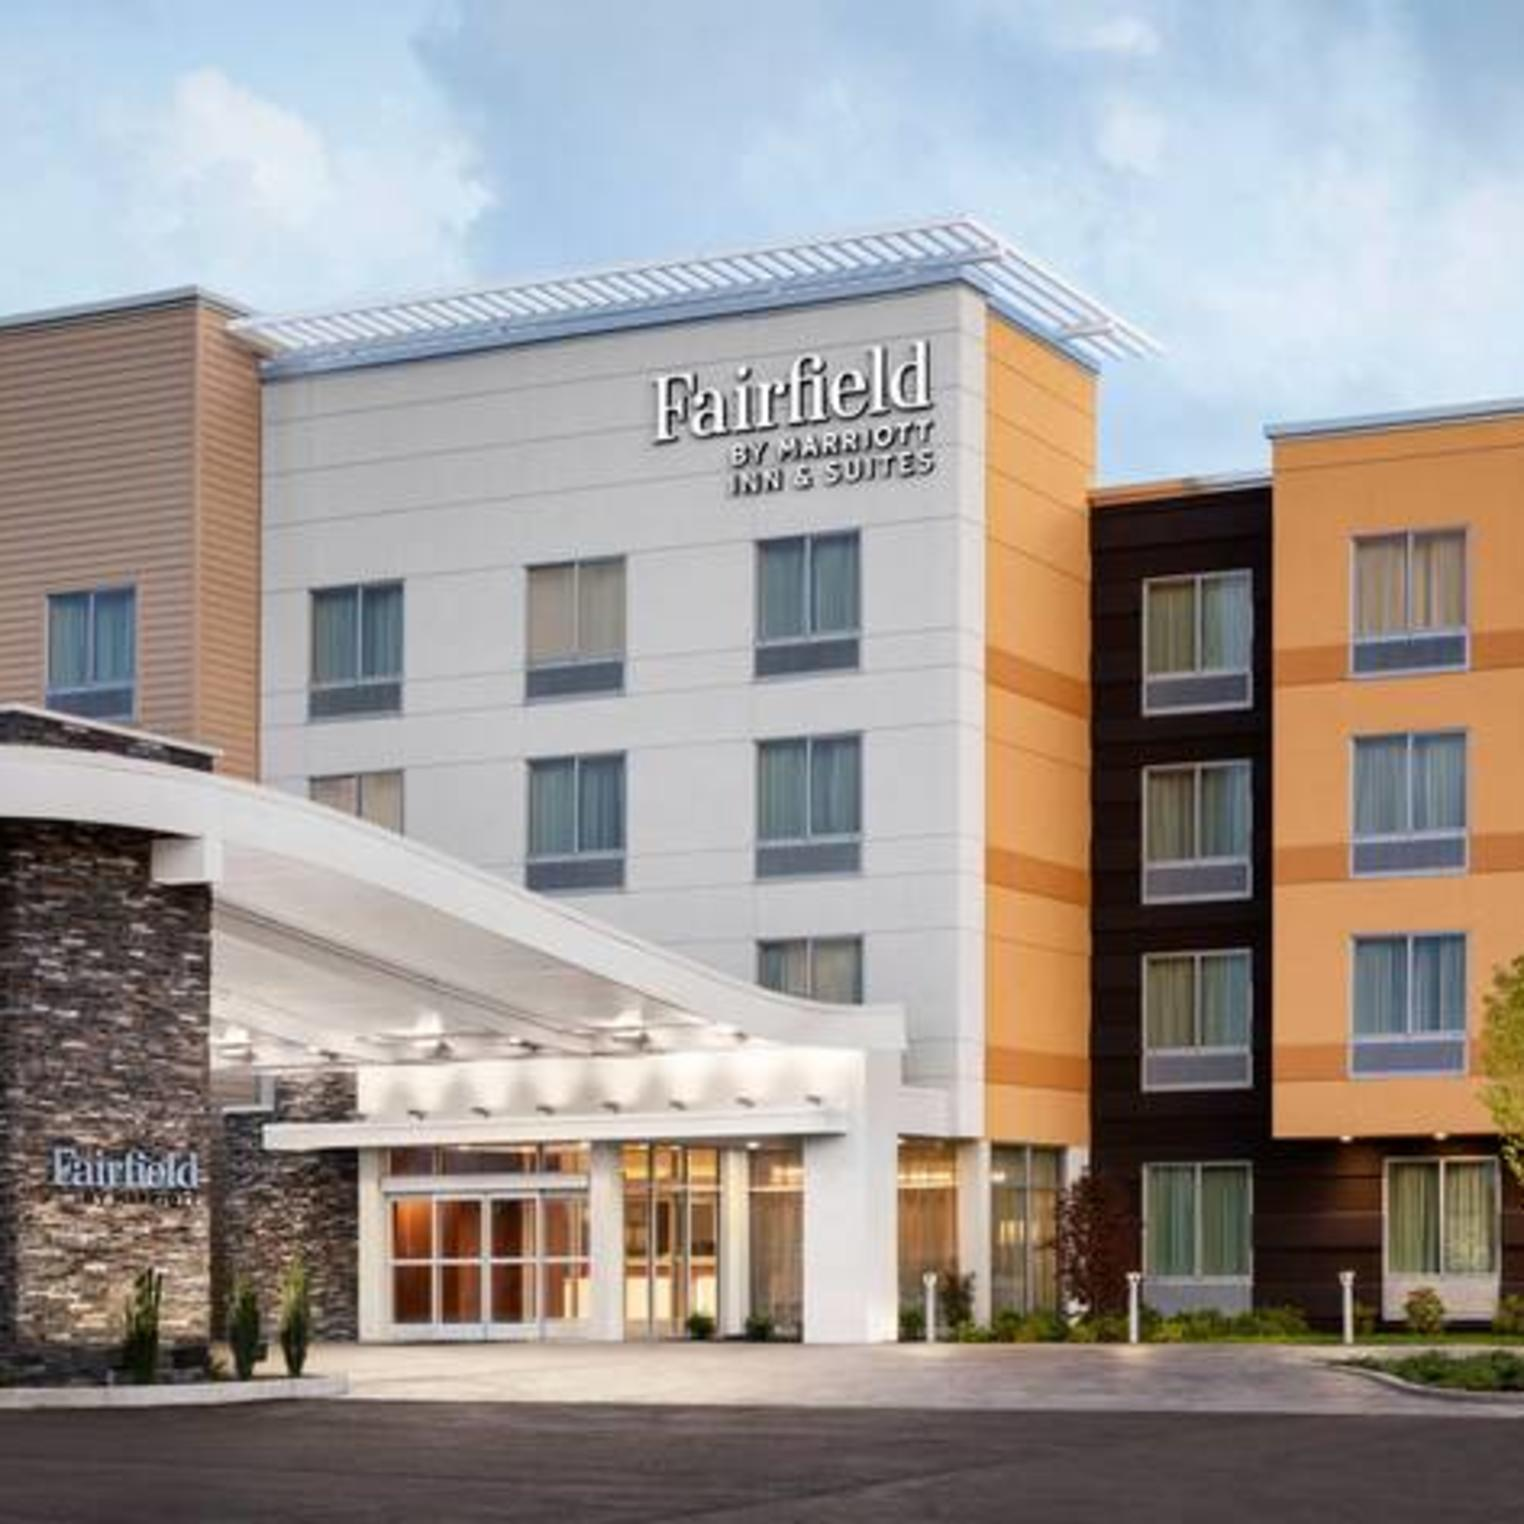 Fairfield Inn & Suites Harrisburg West/Mechanicsburg